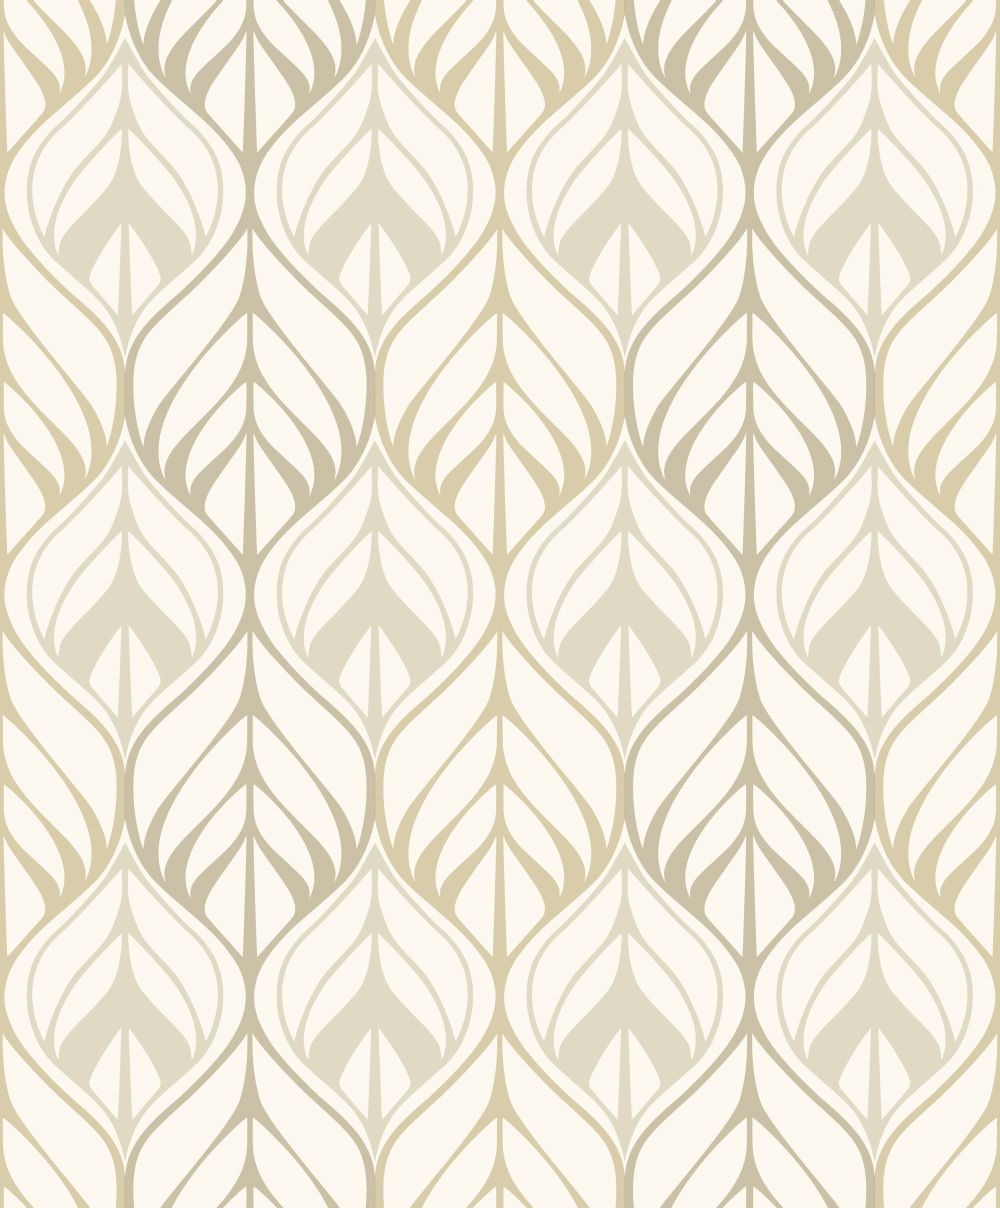 Galerie Leaf Trail Beige Wallpaper main image